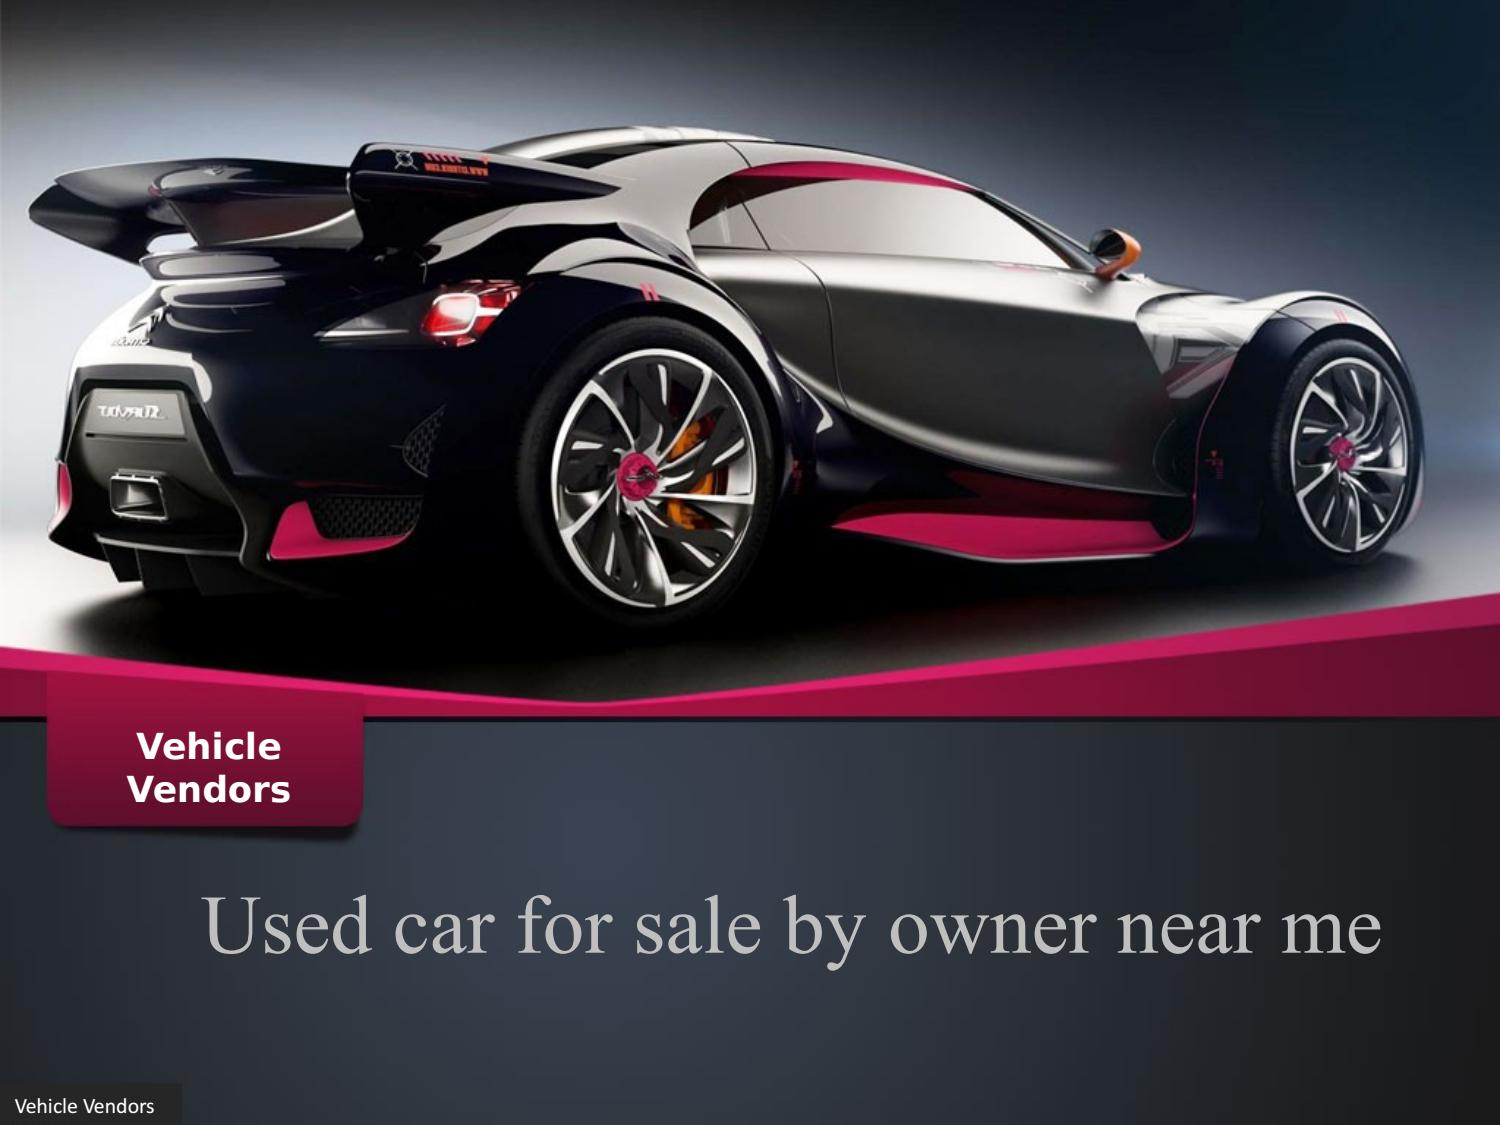 For Sale By Owner Near Me >> Used Car For Sale By Owner Near Me By Vehicle Vendors Issuu